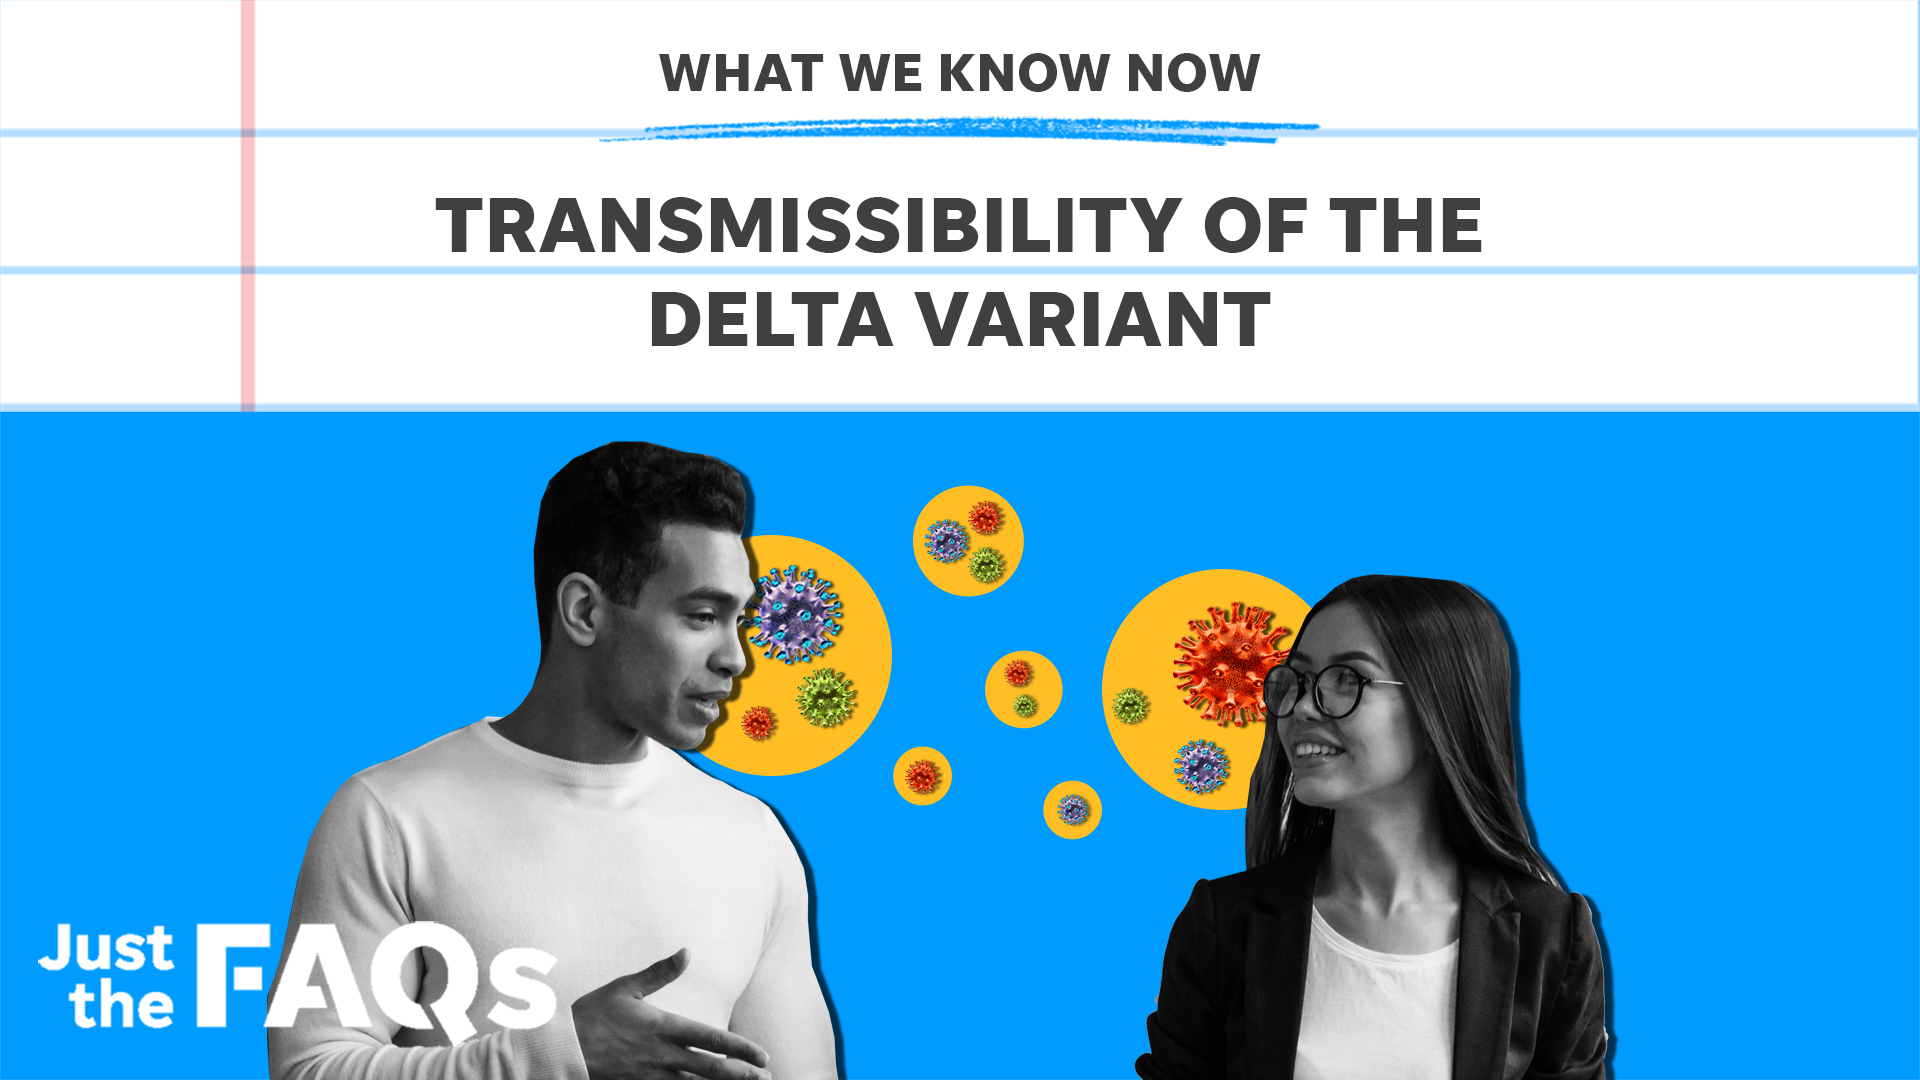 High transmissibility of the Delta variant: Here's why it's so contagious